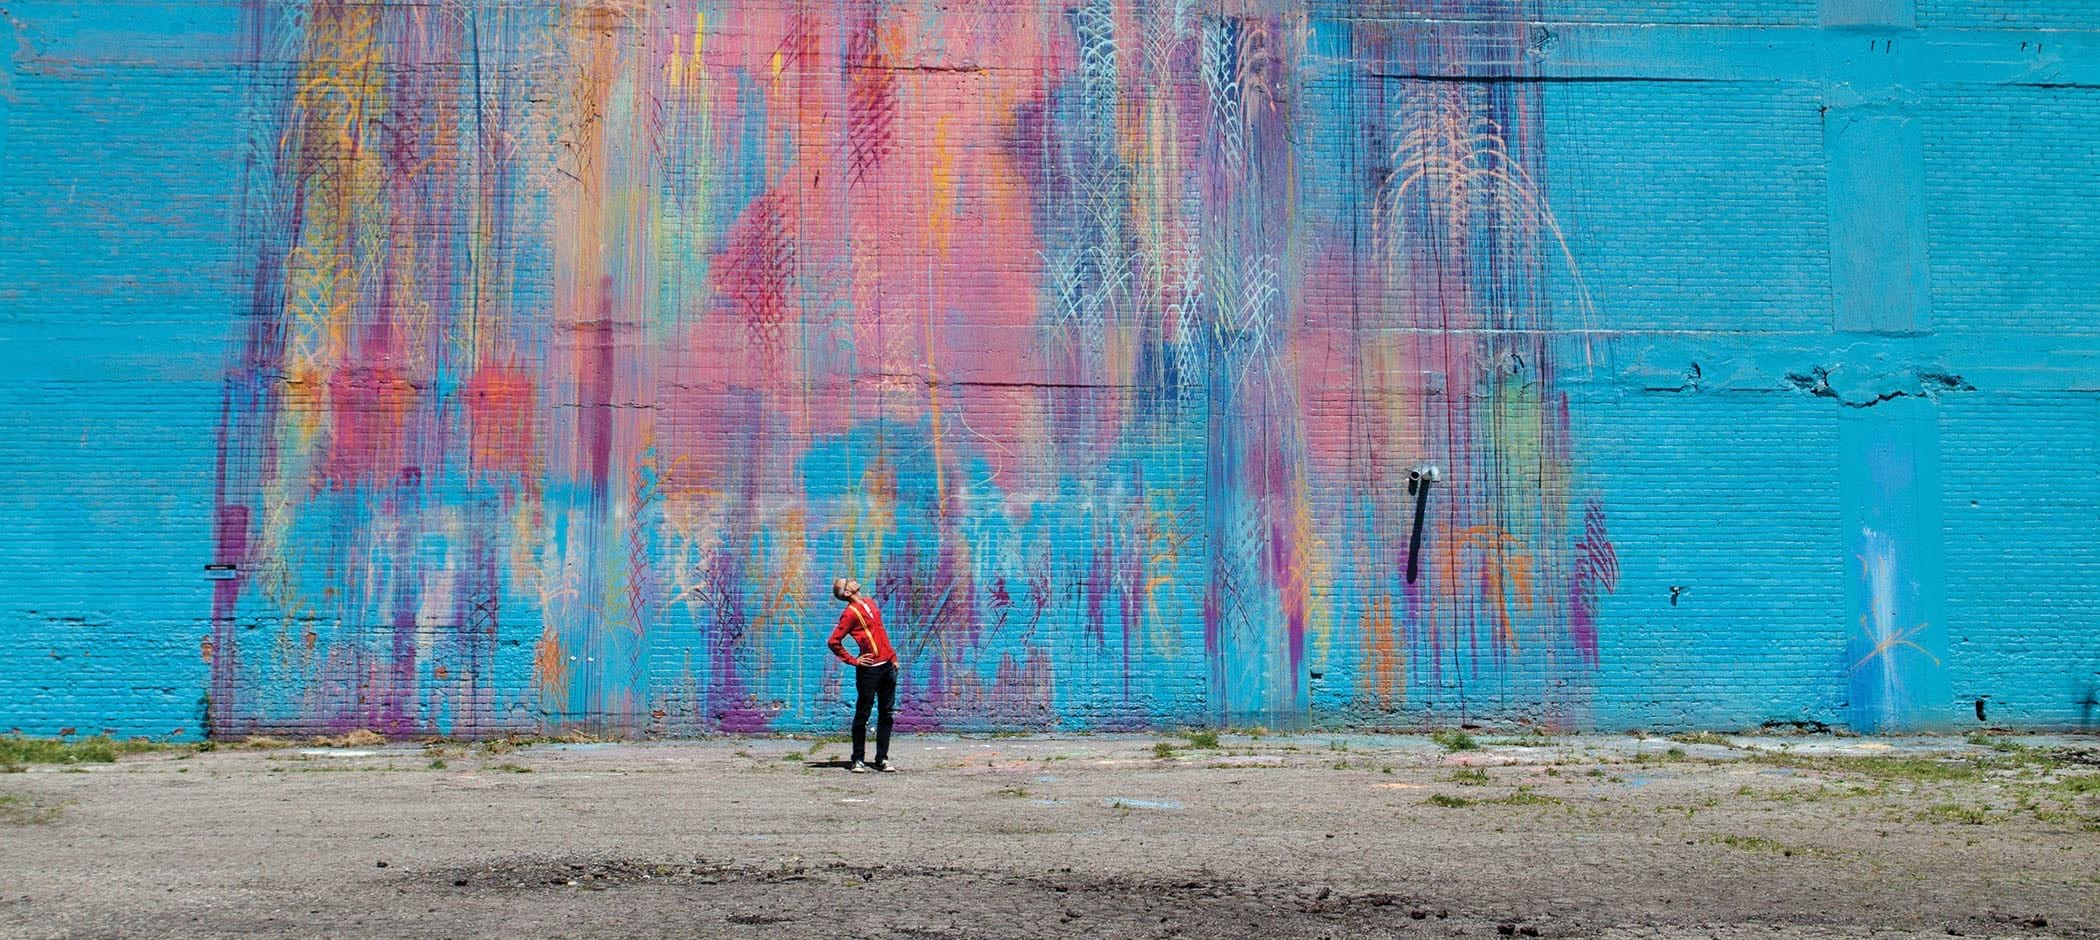 11 Must-See Public Art Pieces in Detroit